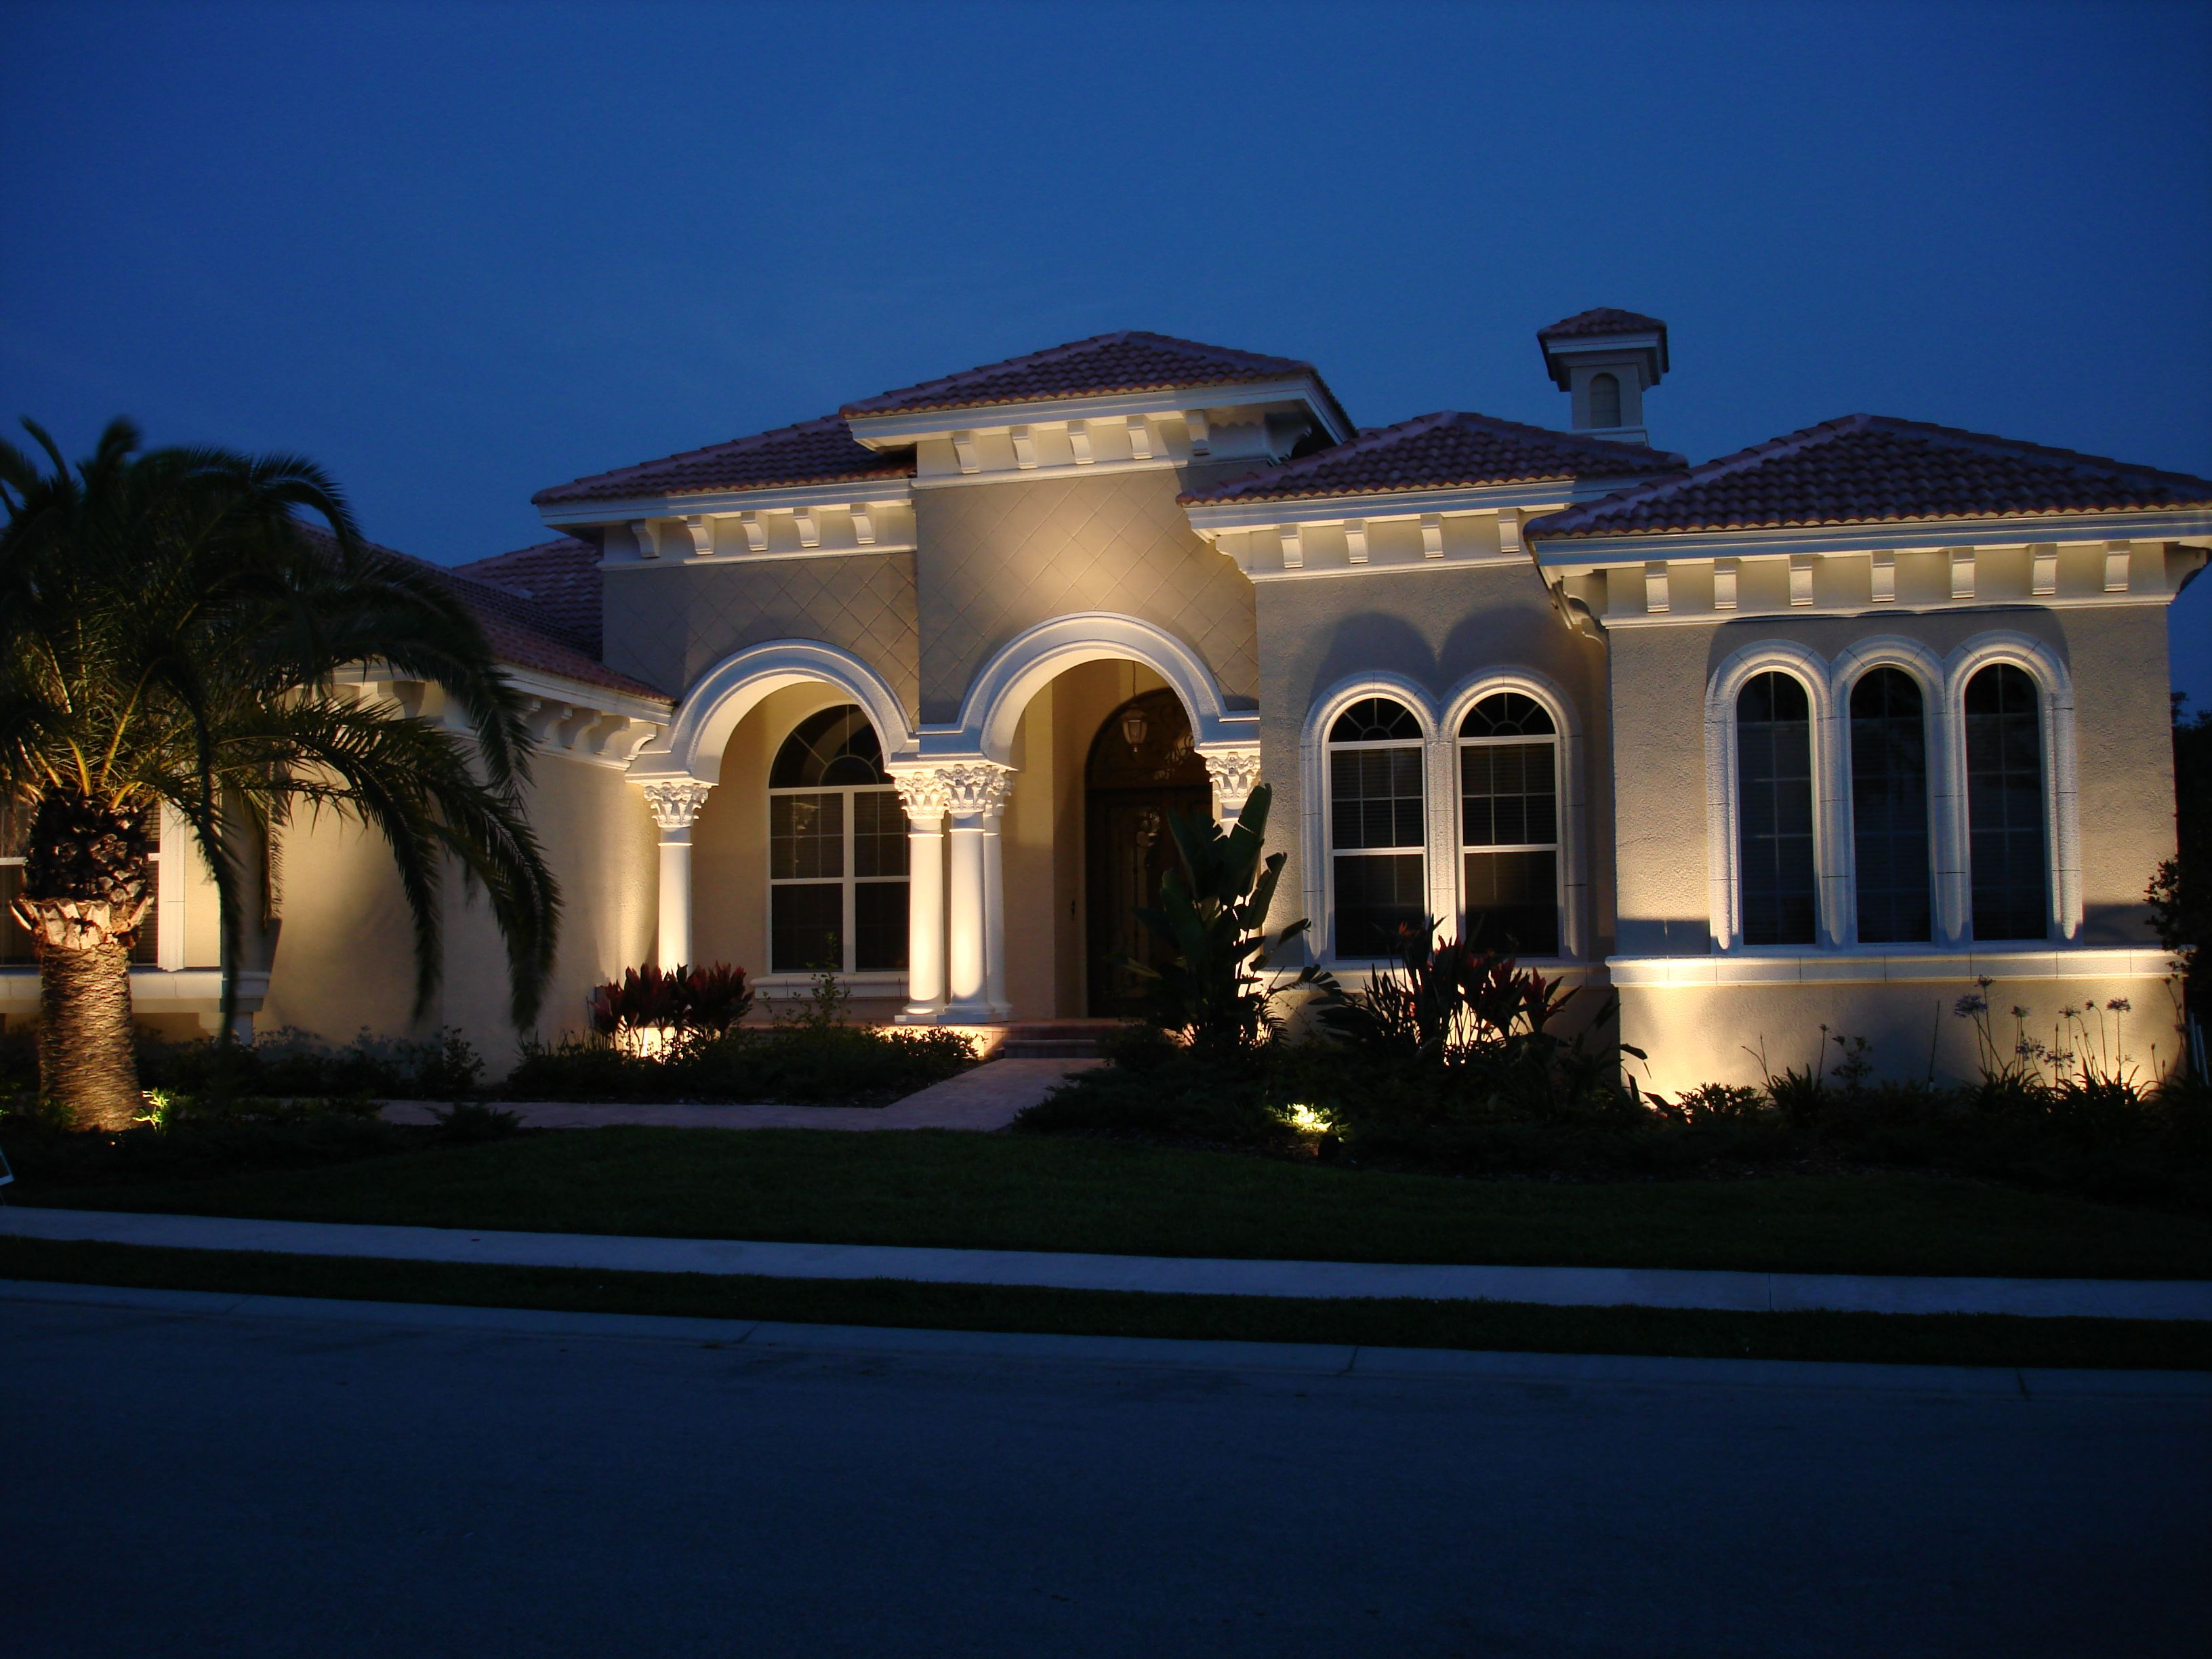 lighting outdoor lighting tampa nighttime lighting design - Outdoor Lighting Design Ideas